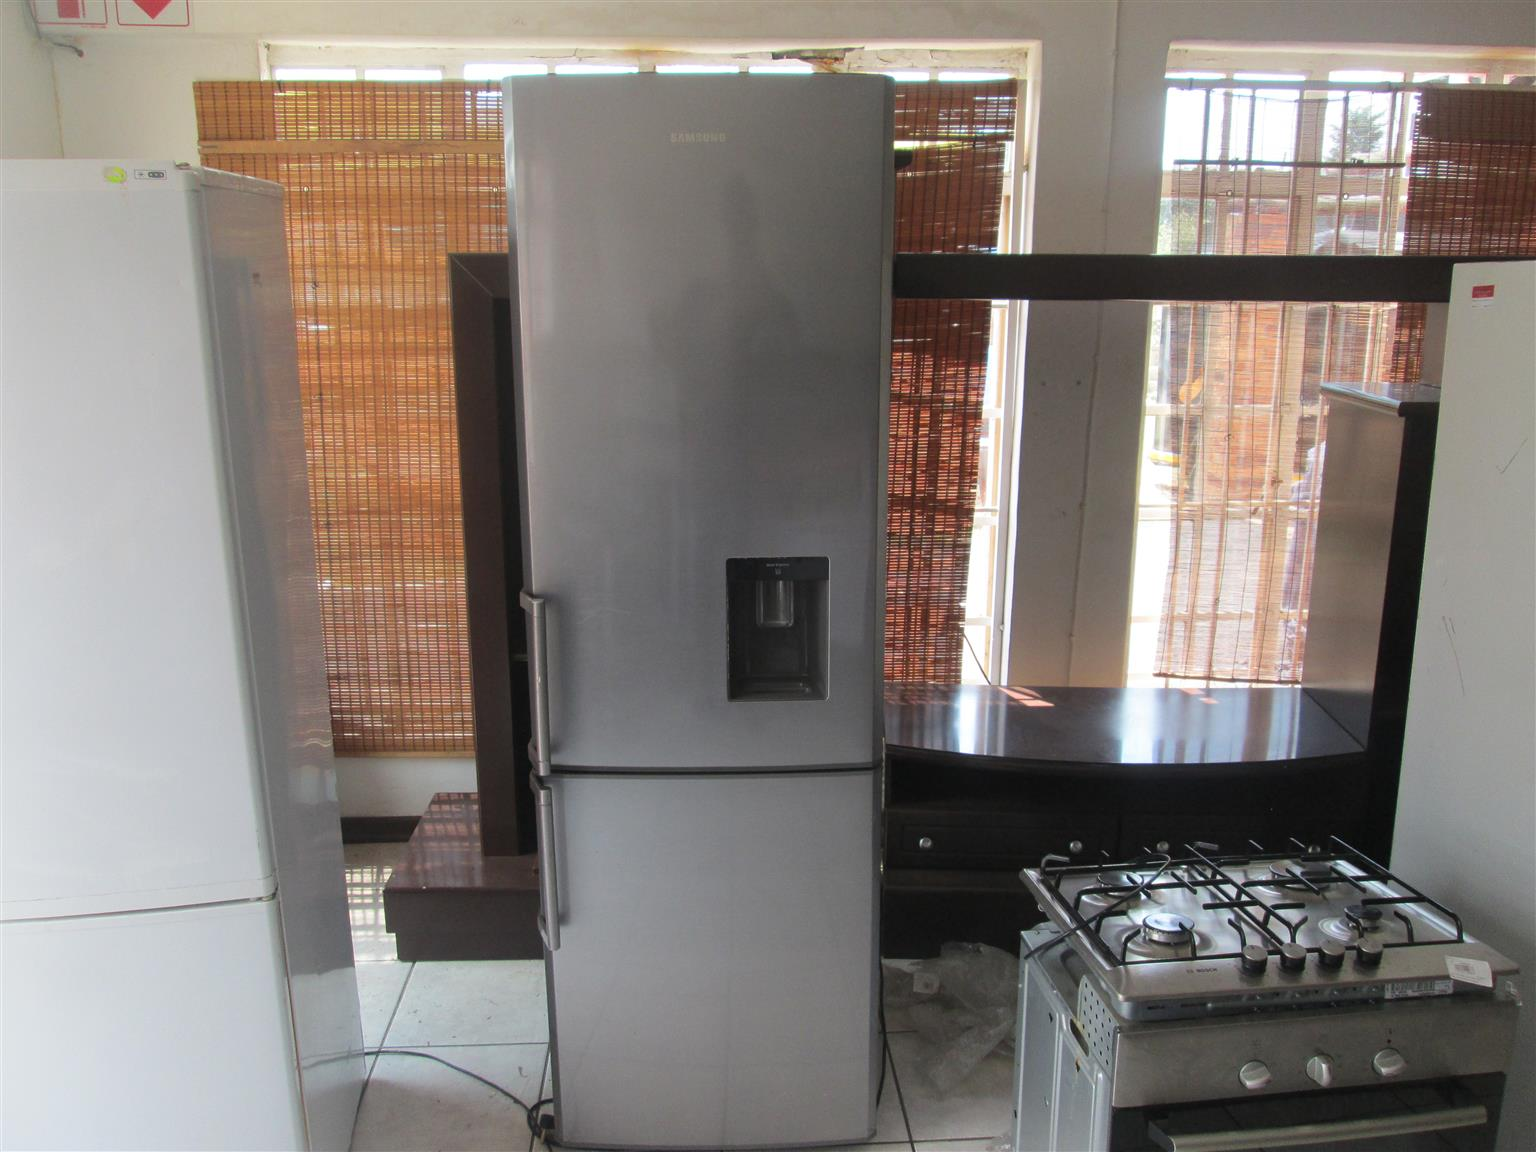 SAMSUNG WATER DISPENSE DOUBLE DOOR FRIDGE AND FREEZER SILVER